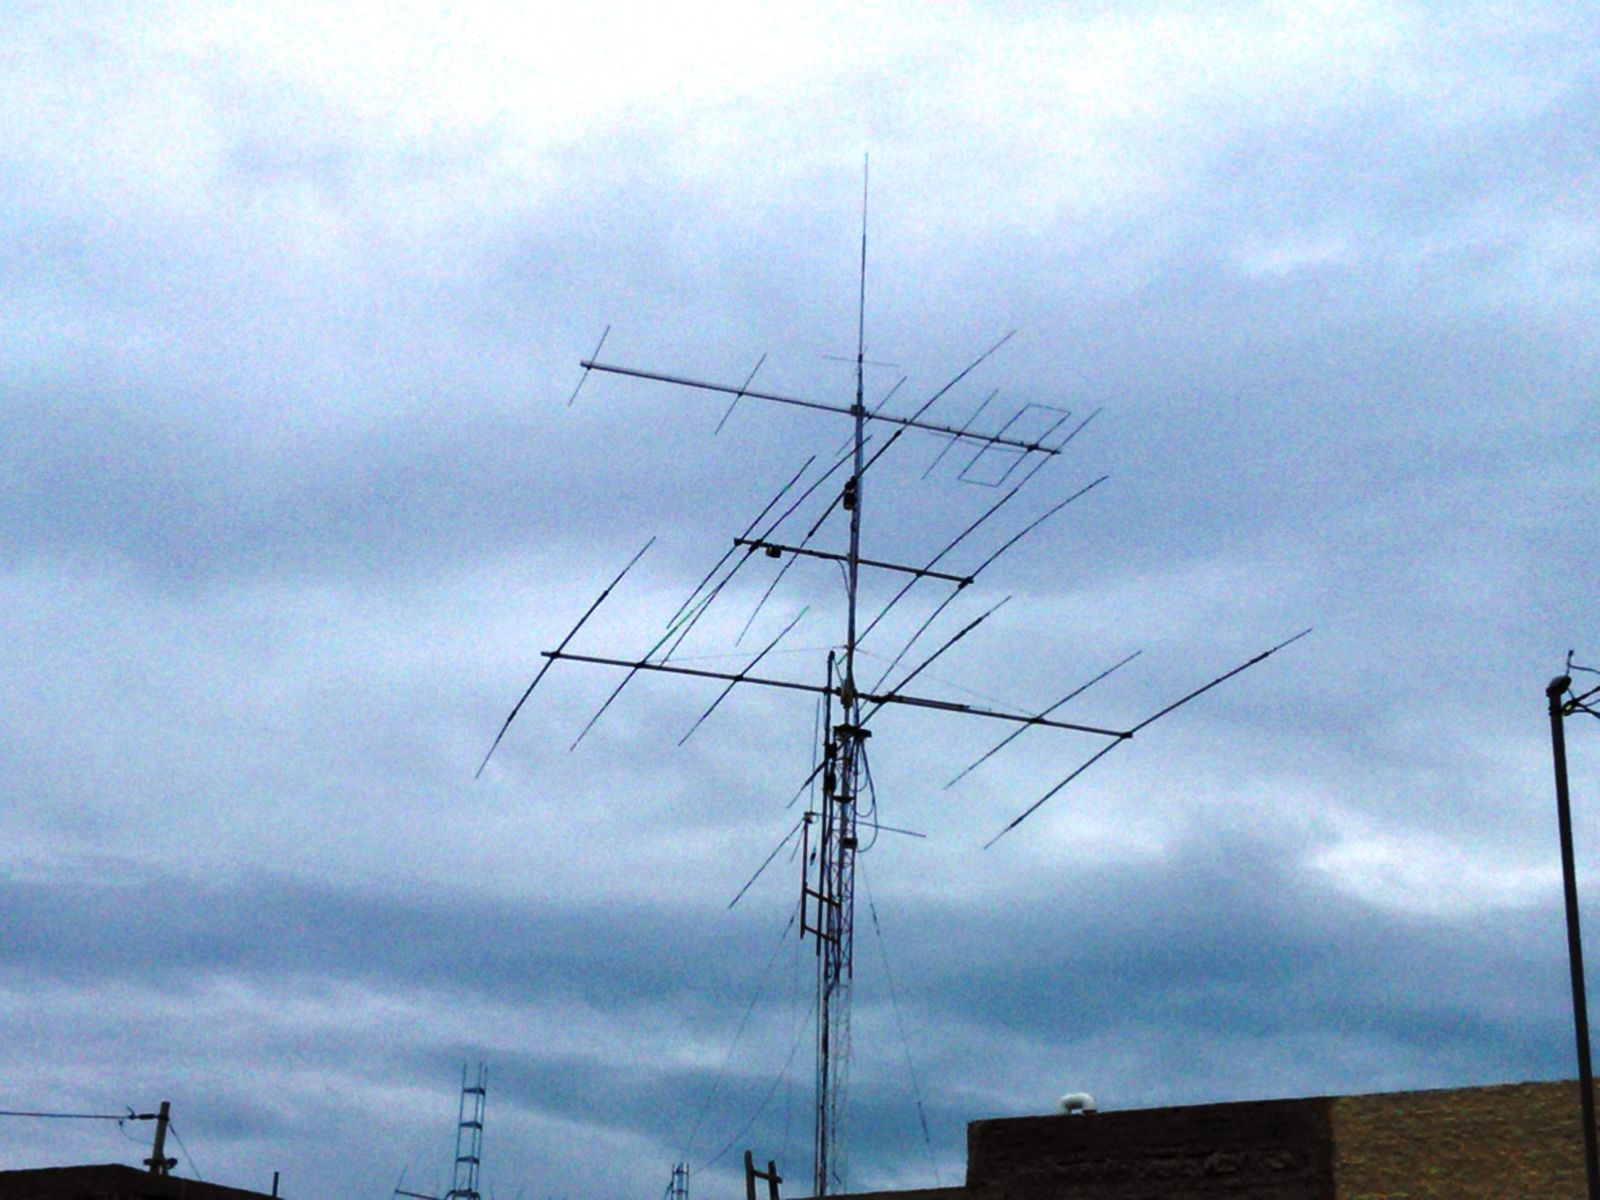 Vertical VHF for 2m / 6 Elem LFA for 6m / A4S by Cushcraft